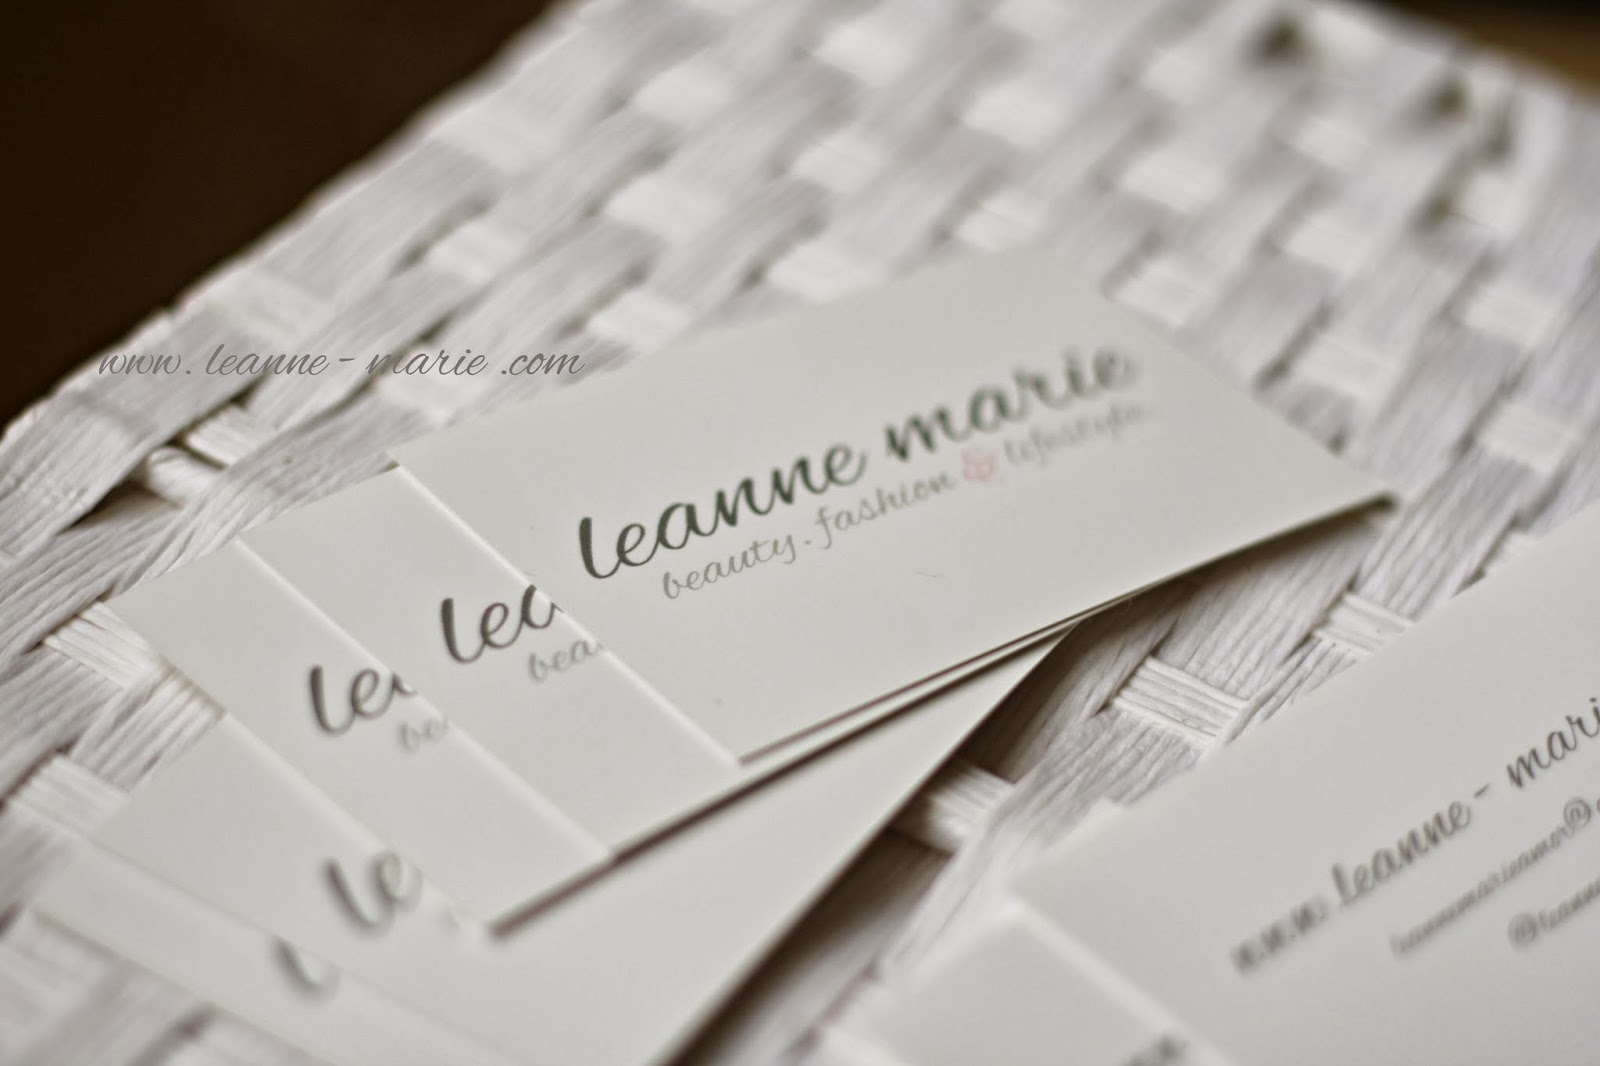 Leanne Marie Free Business Cards From Moo